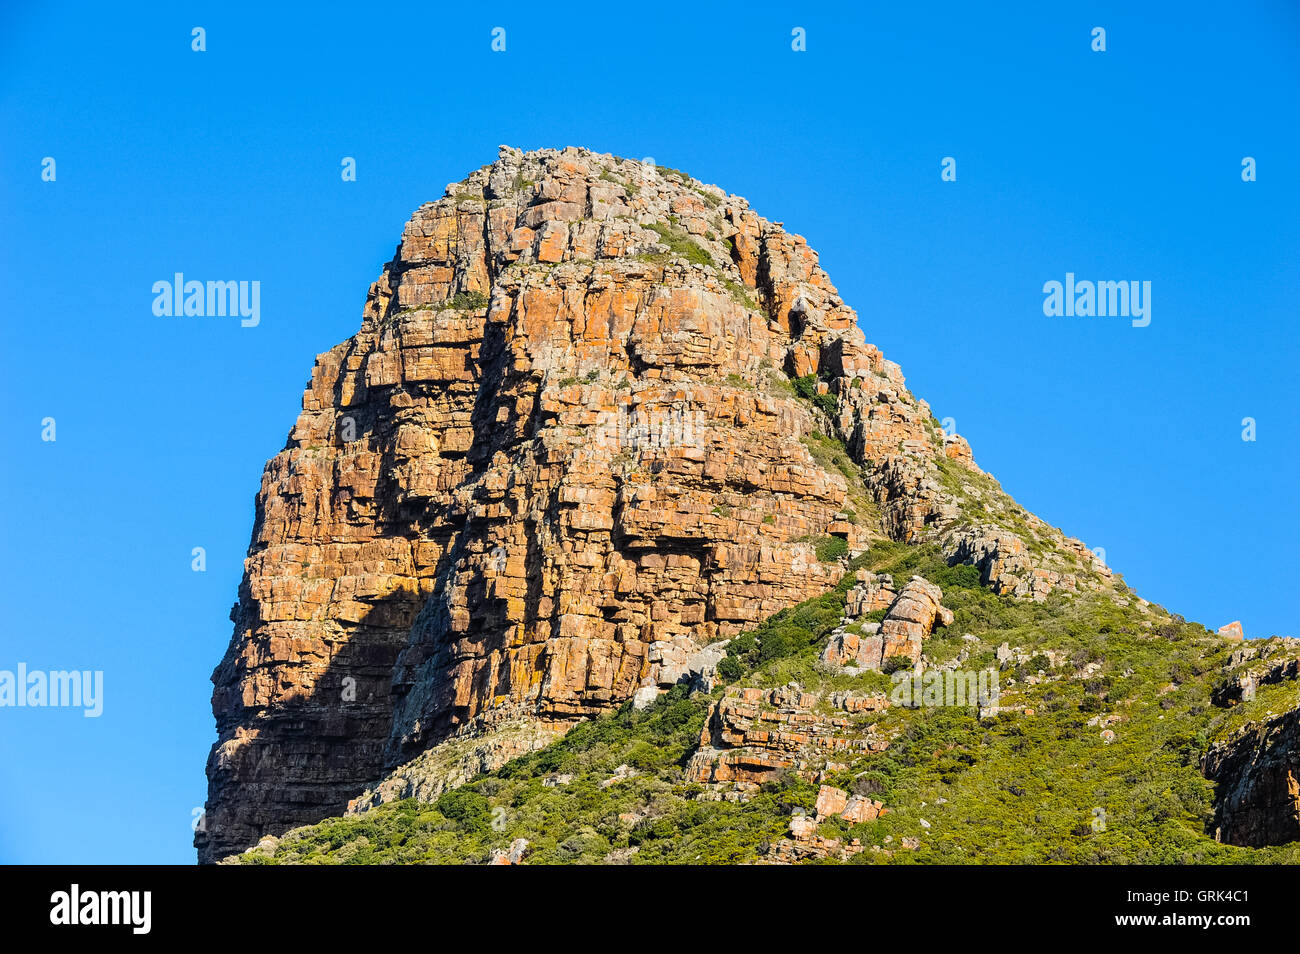 Hout Bay a coastal suburb of Cape Town, South Africa. This mountain is called the Sentinel. - Stock Image